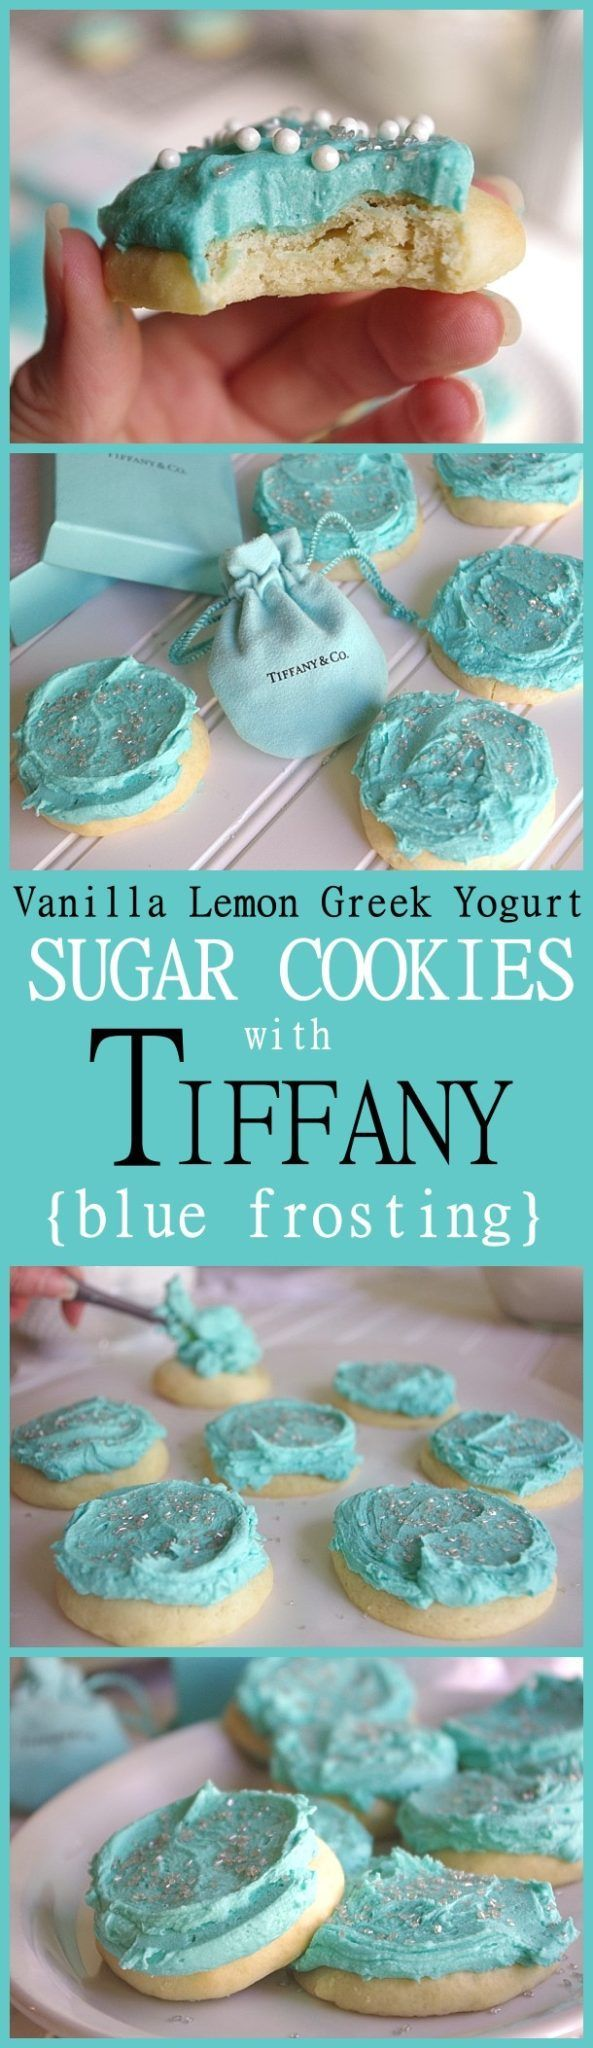 Yummy Vanilla Lemon Greek Yogurt Moist and perfect Sugar Cookies with Tiffany Blue Frosting Recipe and Tutorial - These are SO pretty and over the top lightly lemony YUMMY! 30 minutes tops from start to your first pan out of the oven. NO ROLLING and NO REFRIGERATION down time!